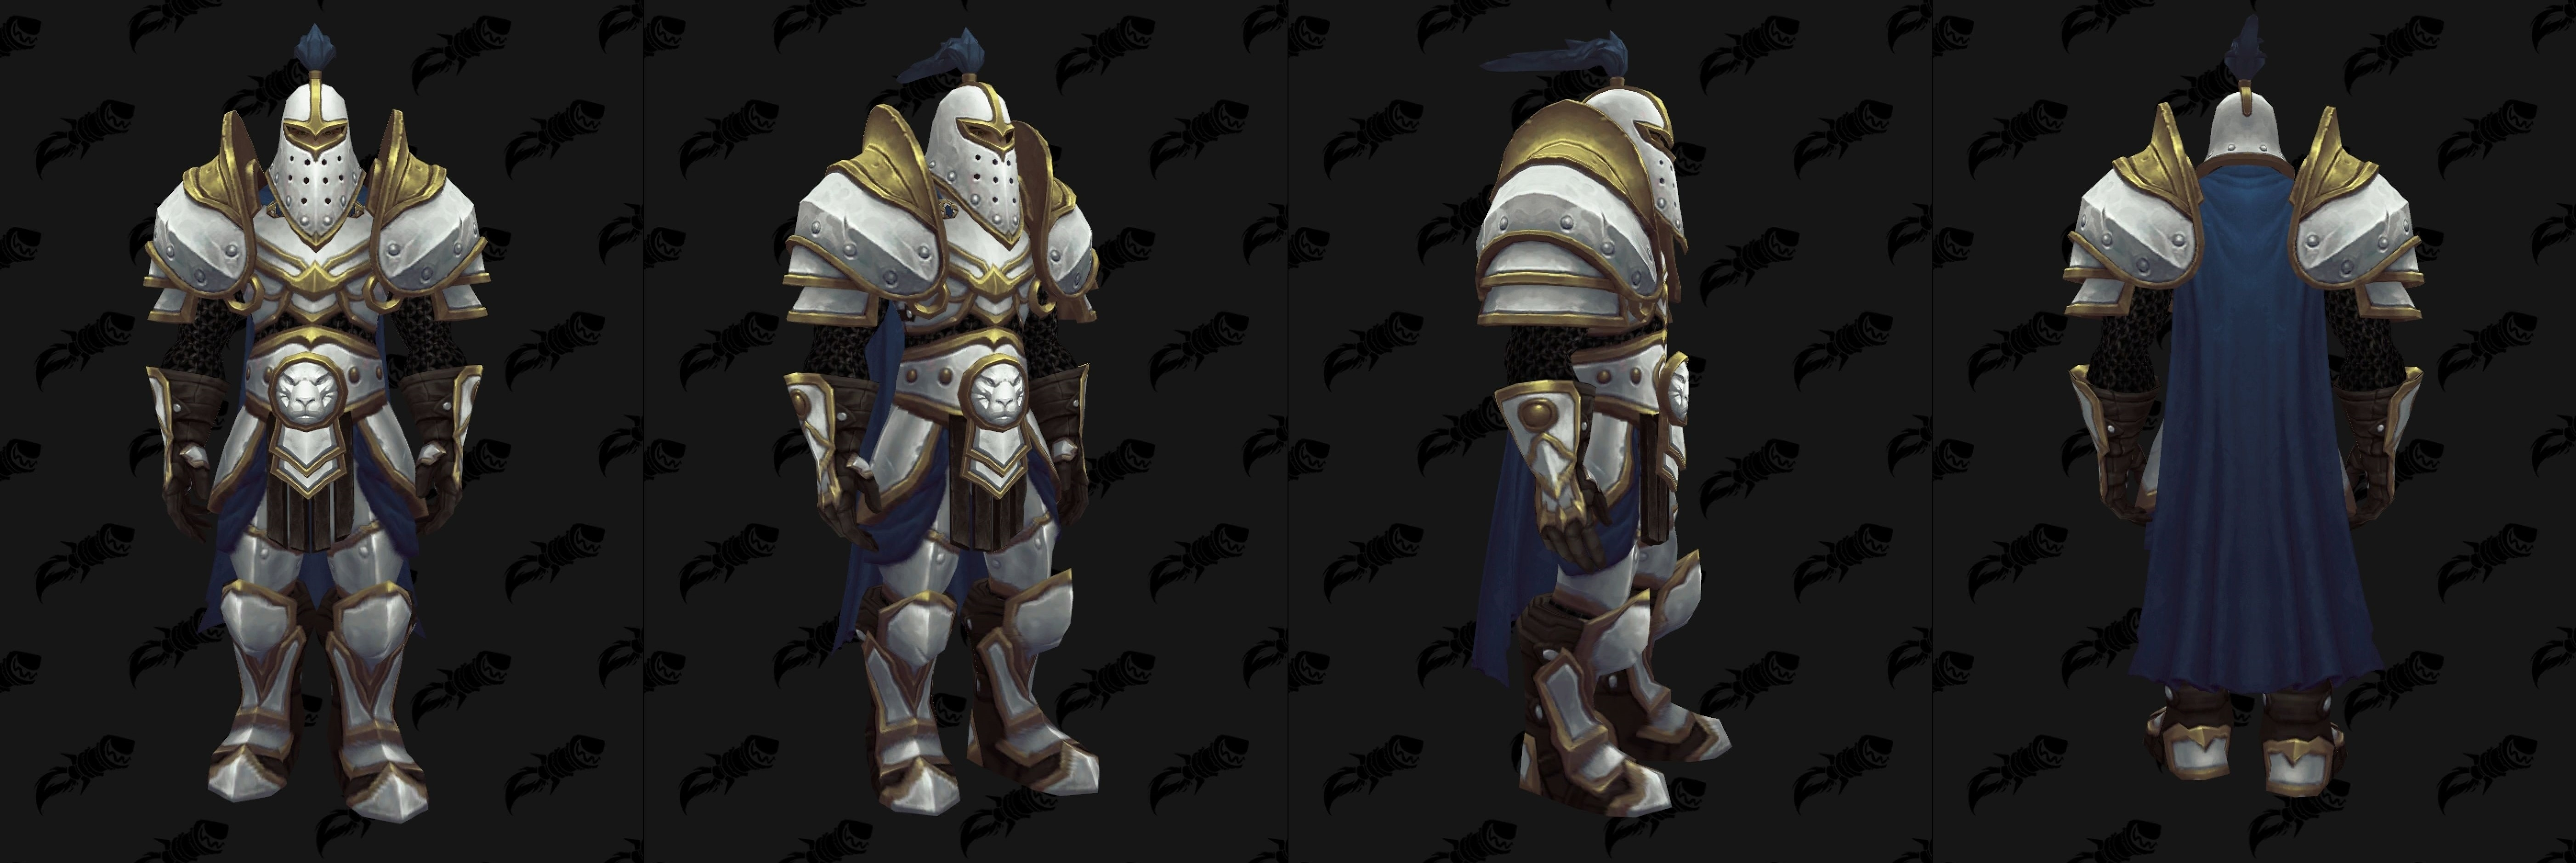 Battle For Azeroth Season 1 Pvp Rewards And Transmog Wowhead News